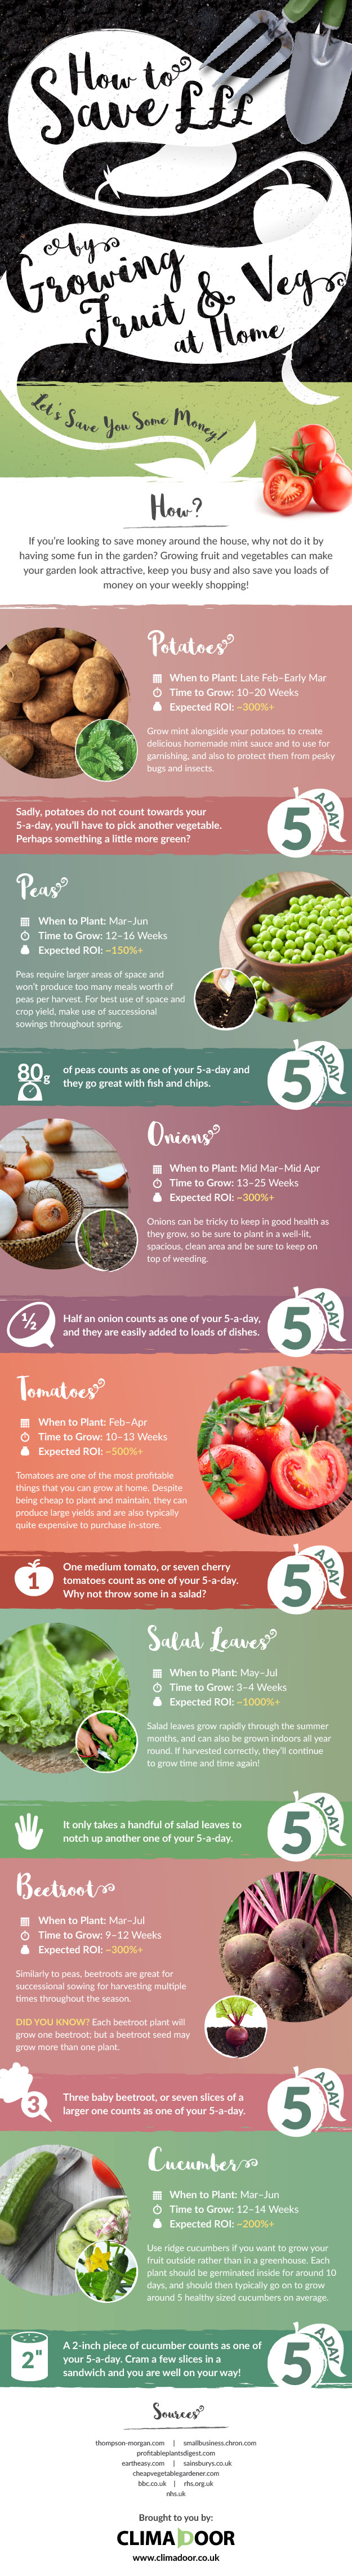 How to grow vegetables at home infographic